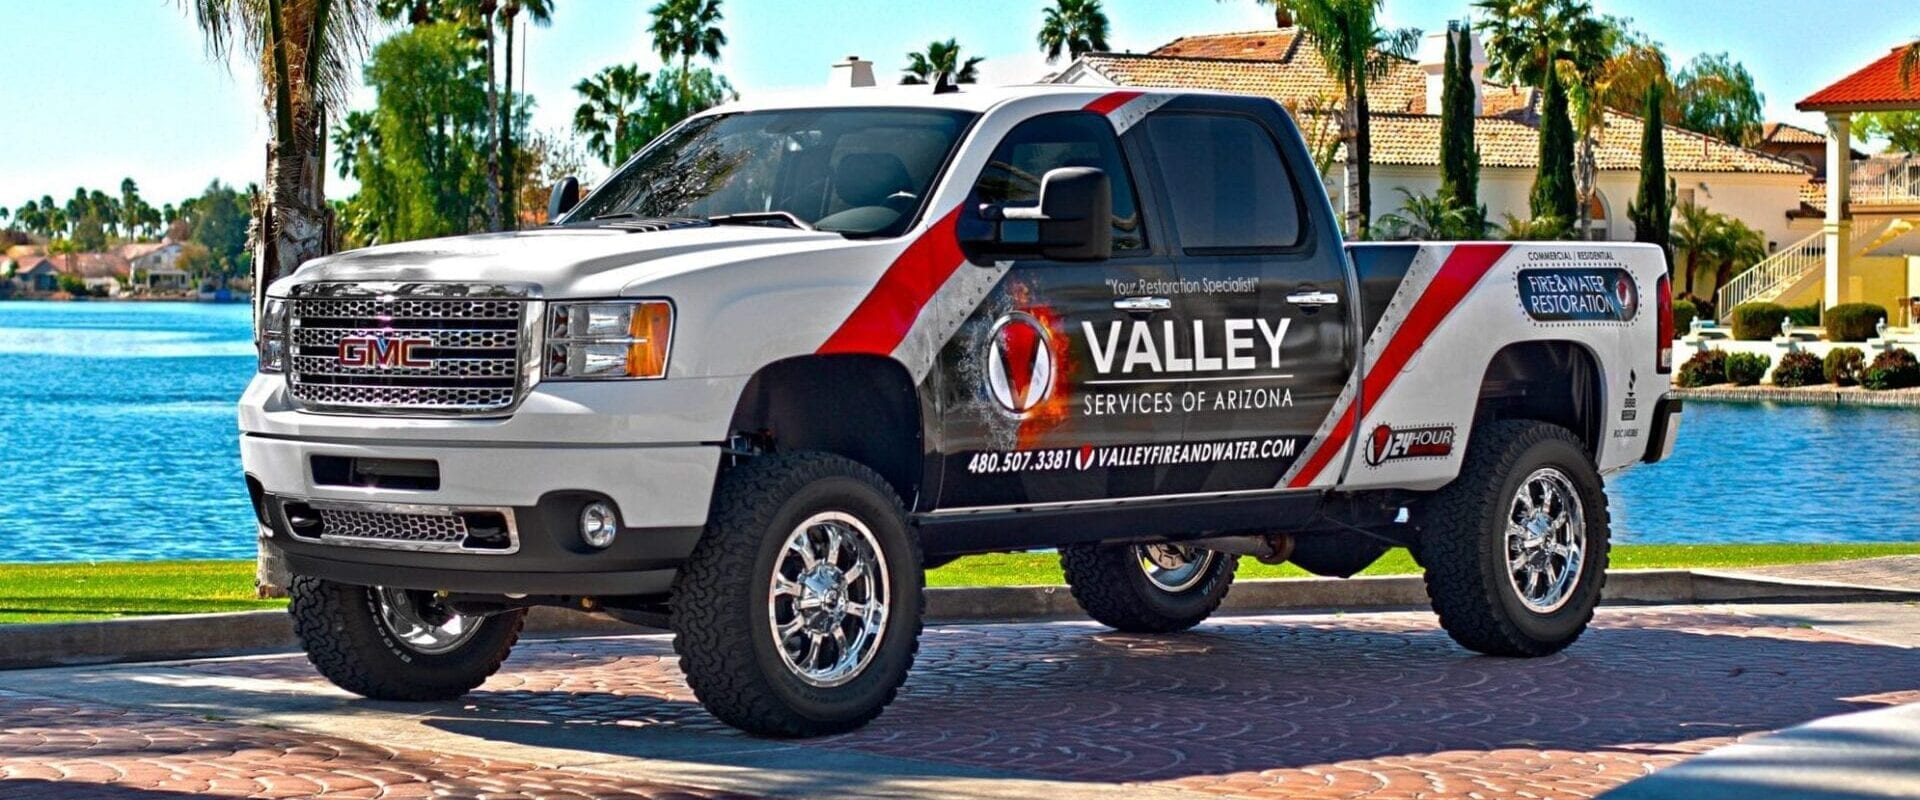 Best Vehicle Wraps for Restoration Companies